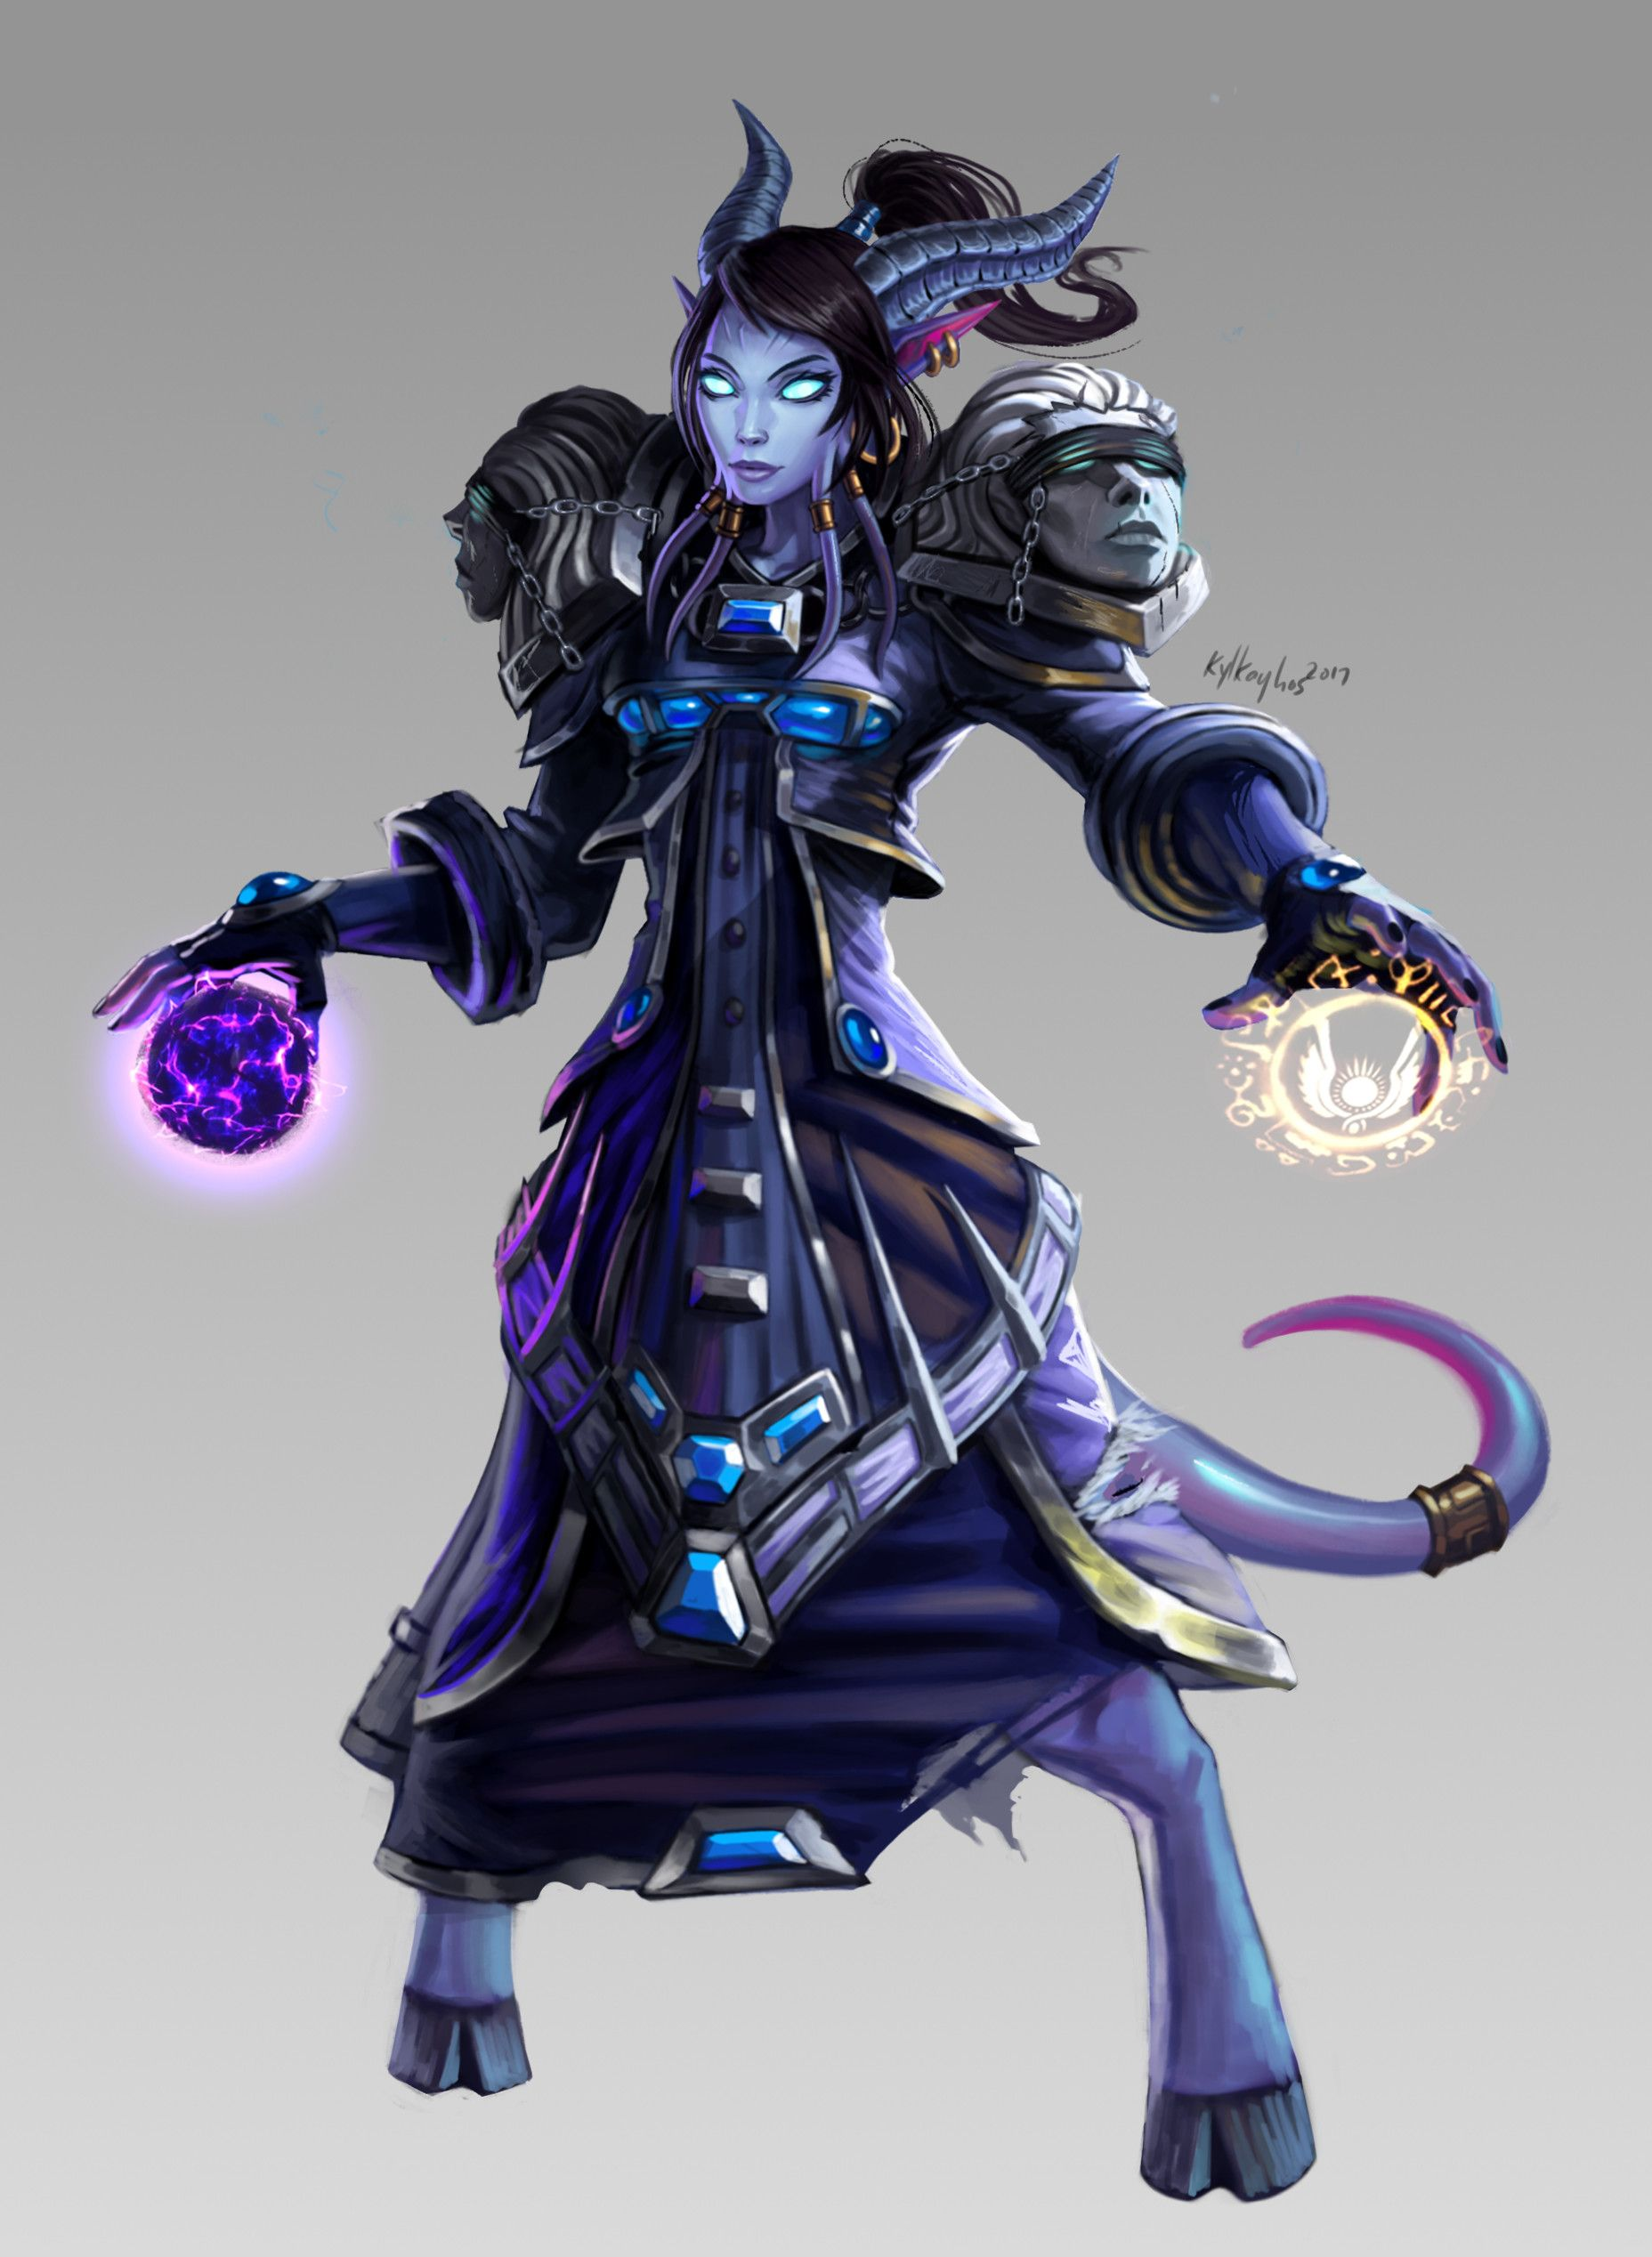 Check Out The Male Draenei I Did A Few Days Ago